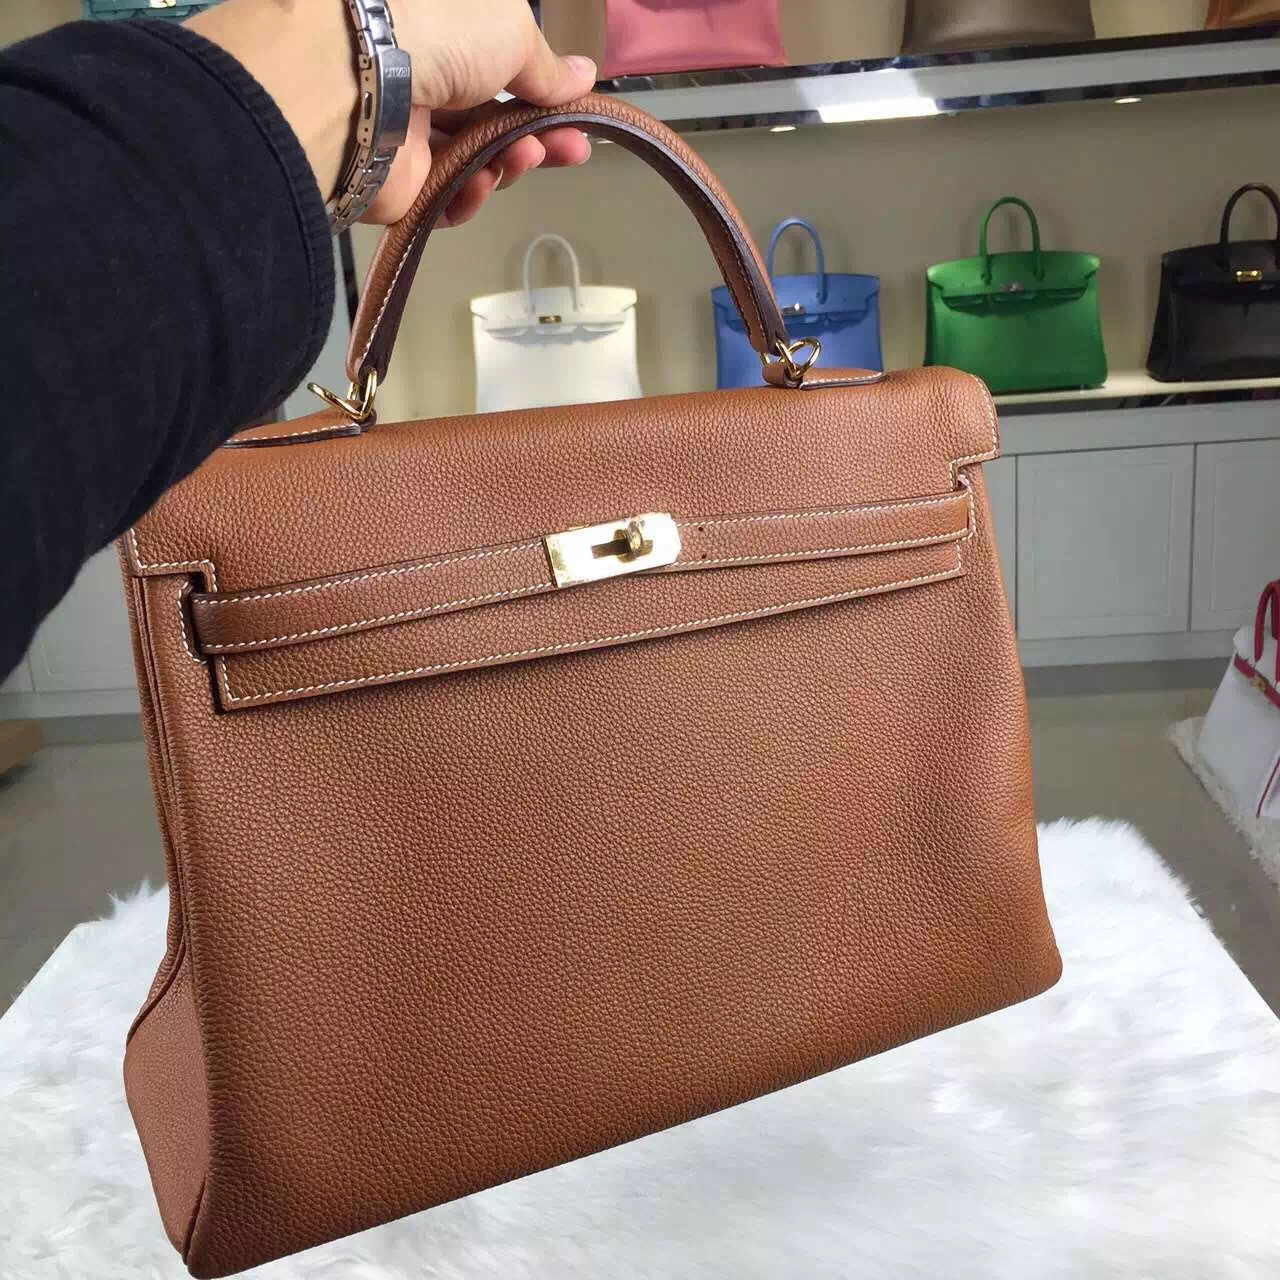 Vip Customized Hermes Brown France Togo Leather Kelly Bag 35CM Women's Top Handles